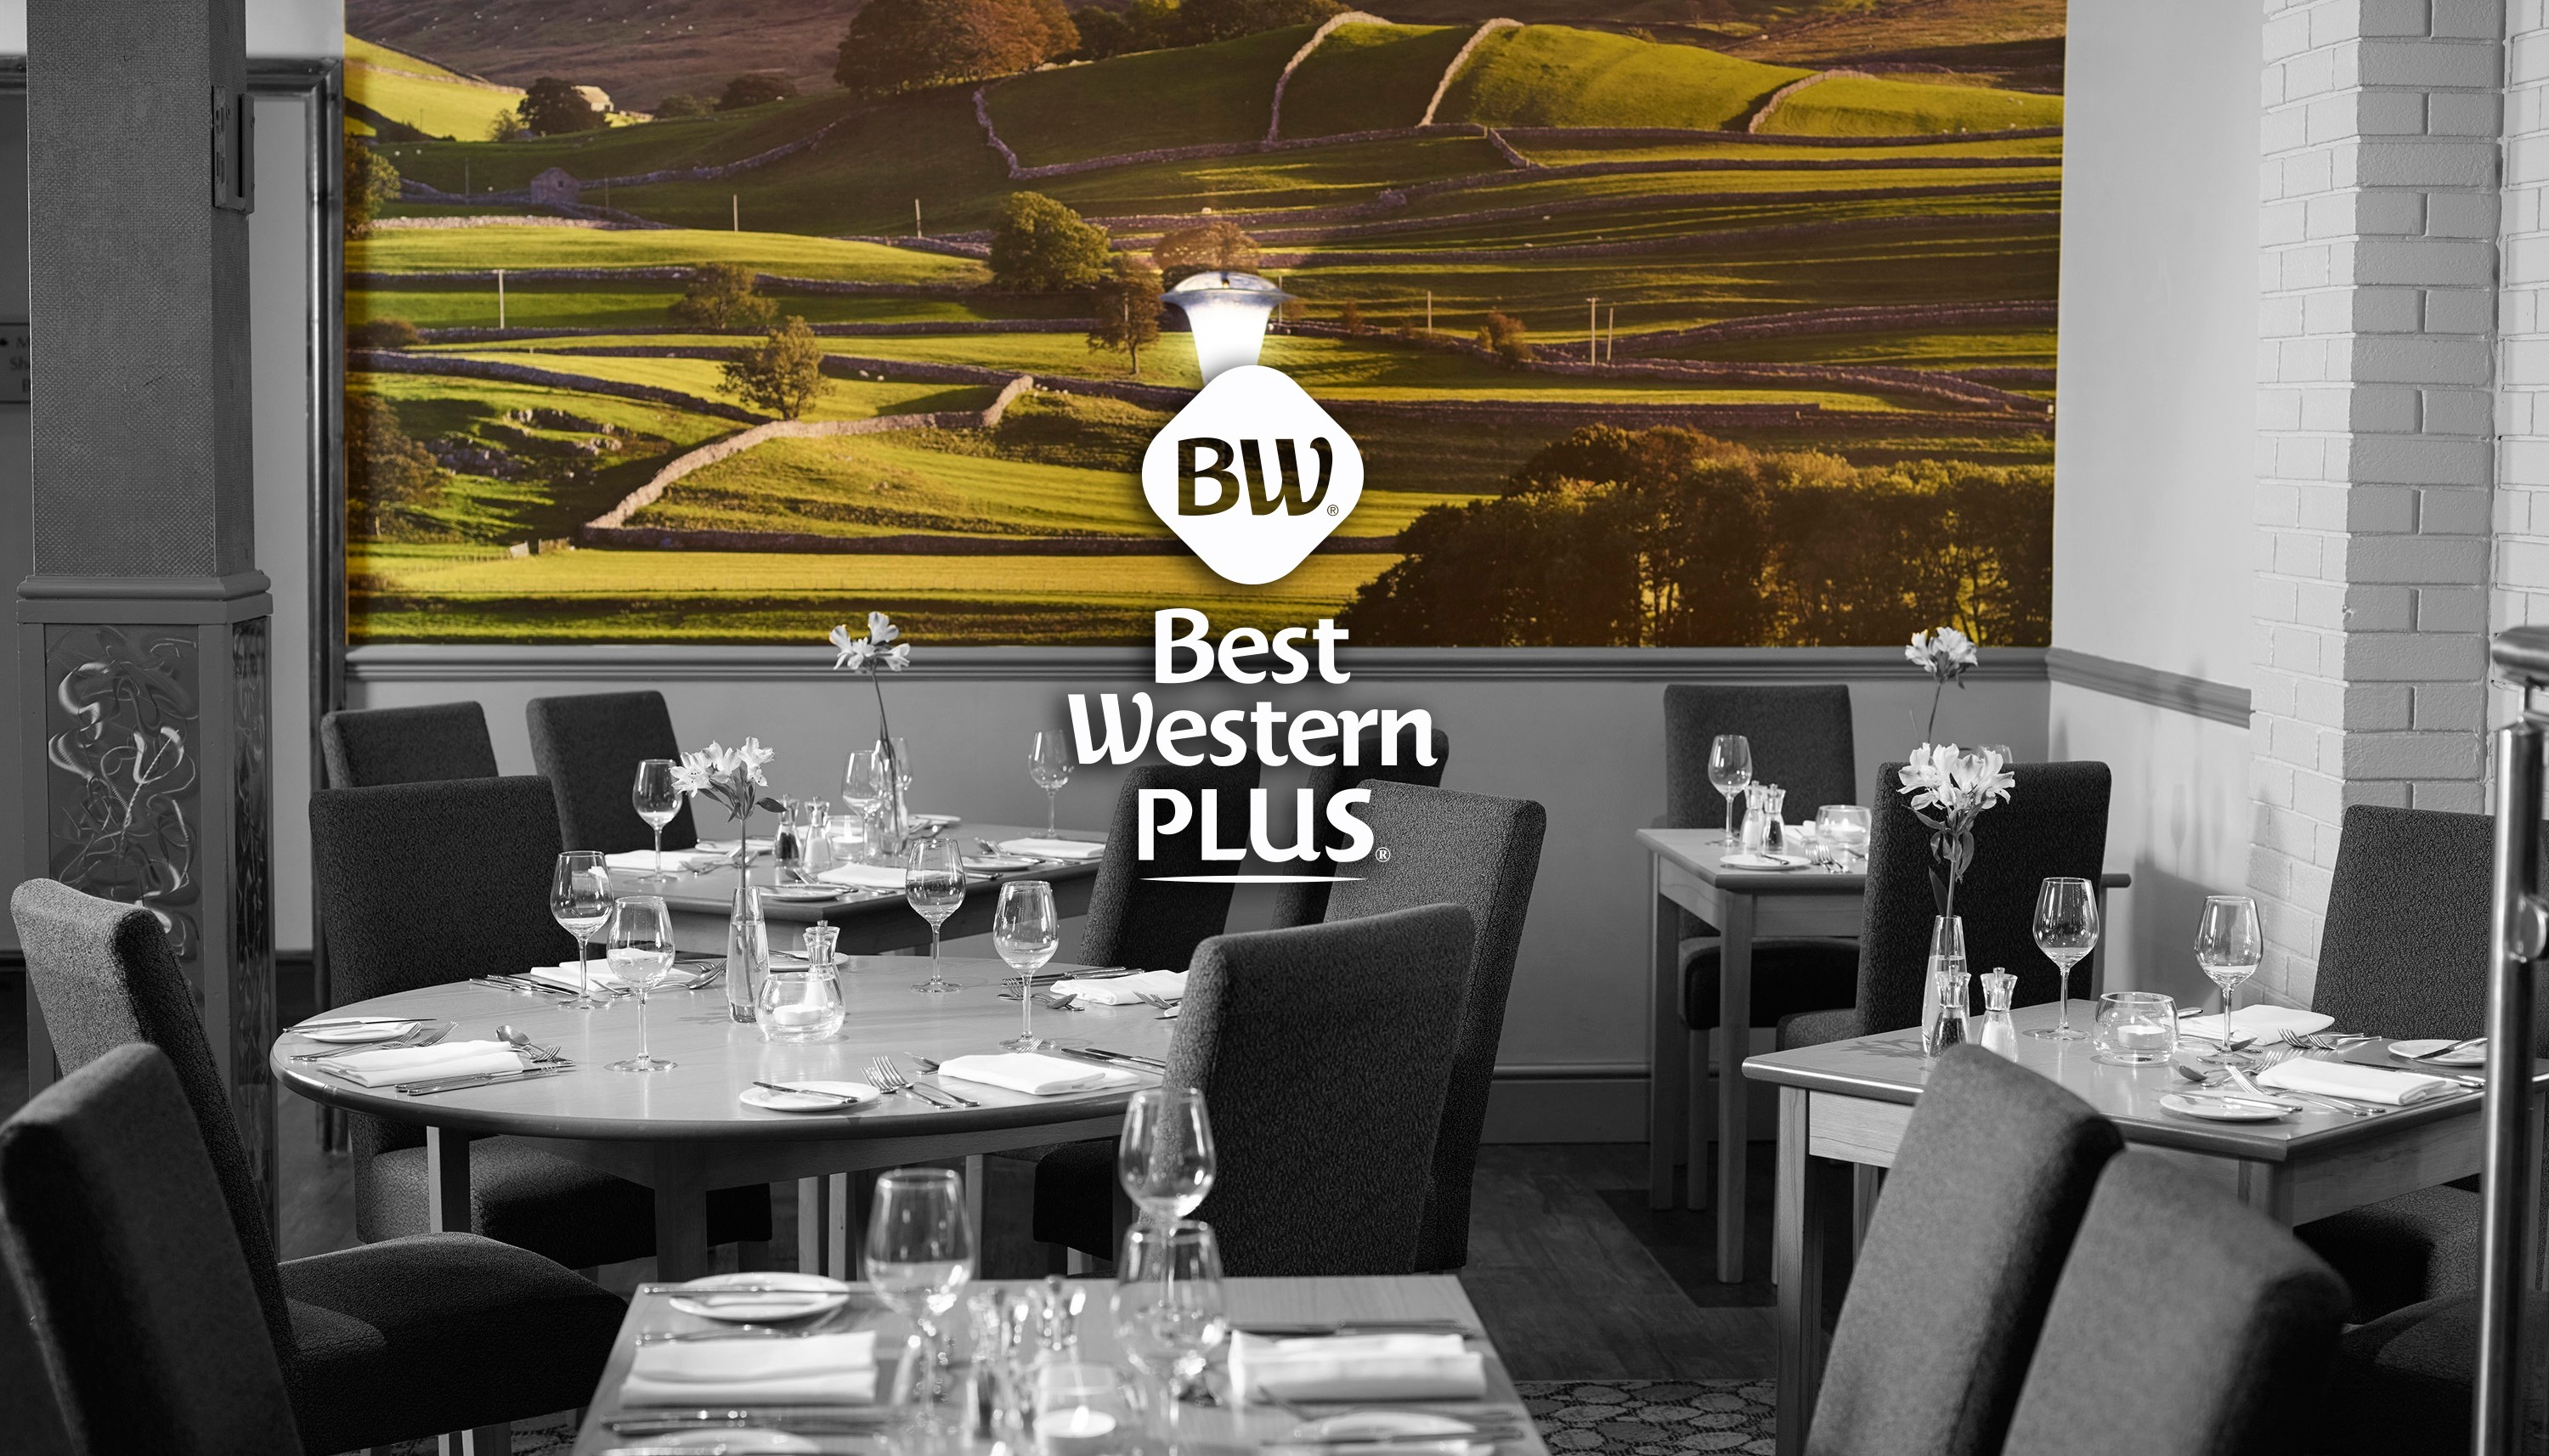 Watermill Restaurant & Bar by Compass Dining, Leeds, United Kingdom